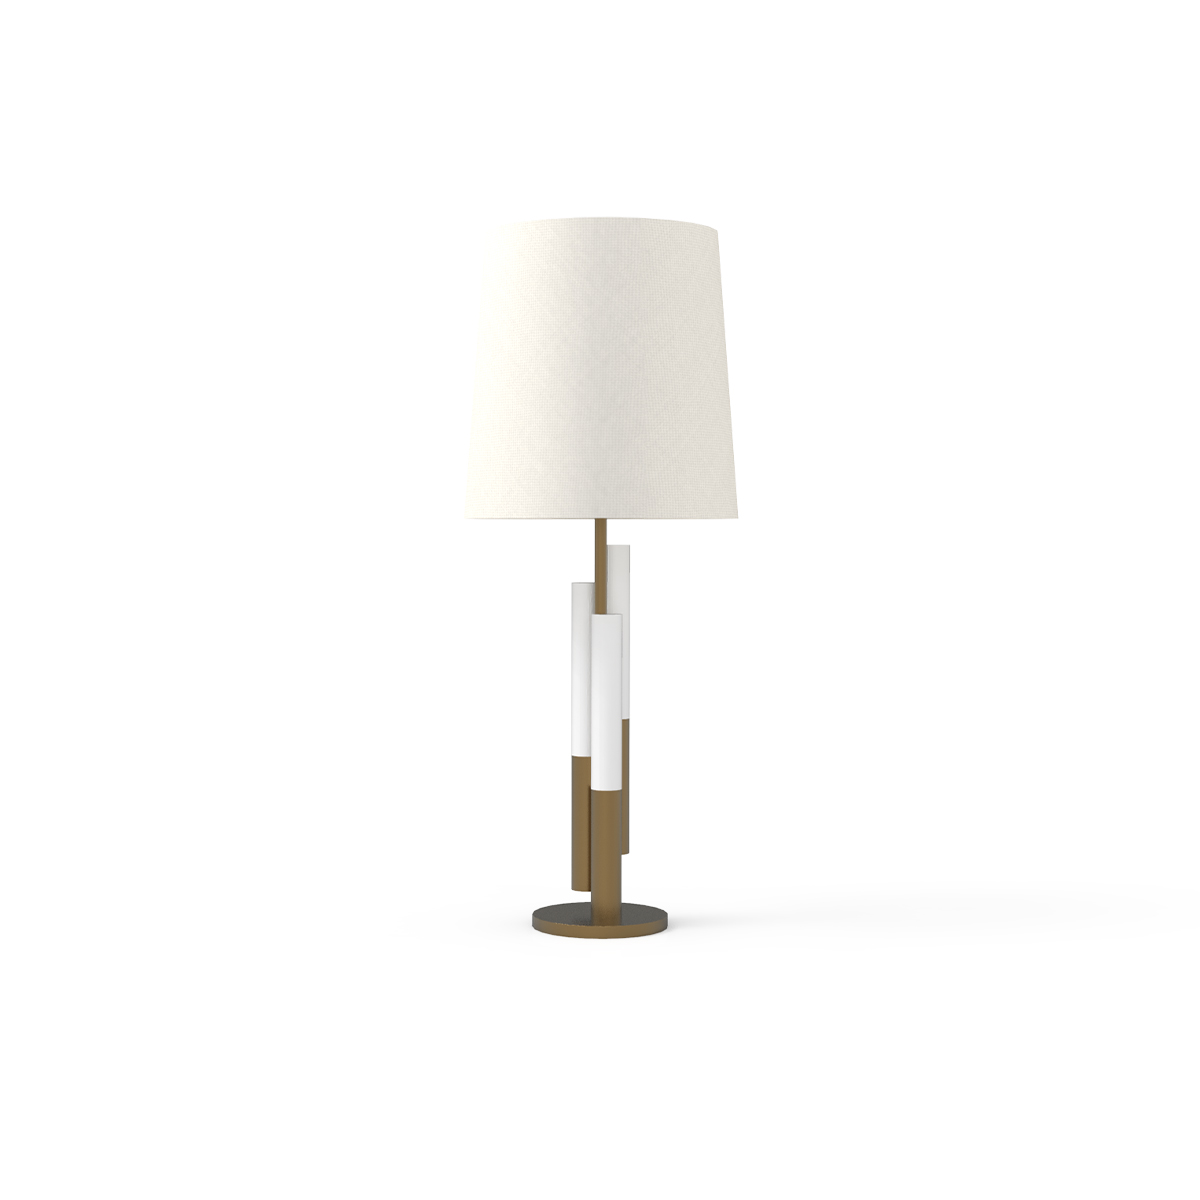 Winnow Table Lamp by Caffe Latte Home Covet Lighting